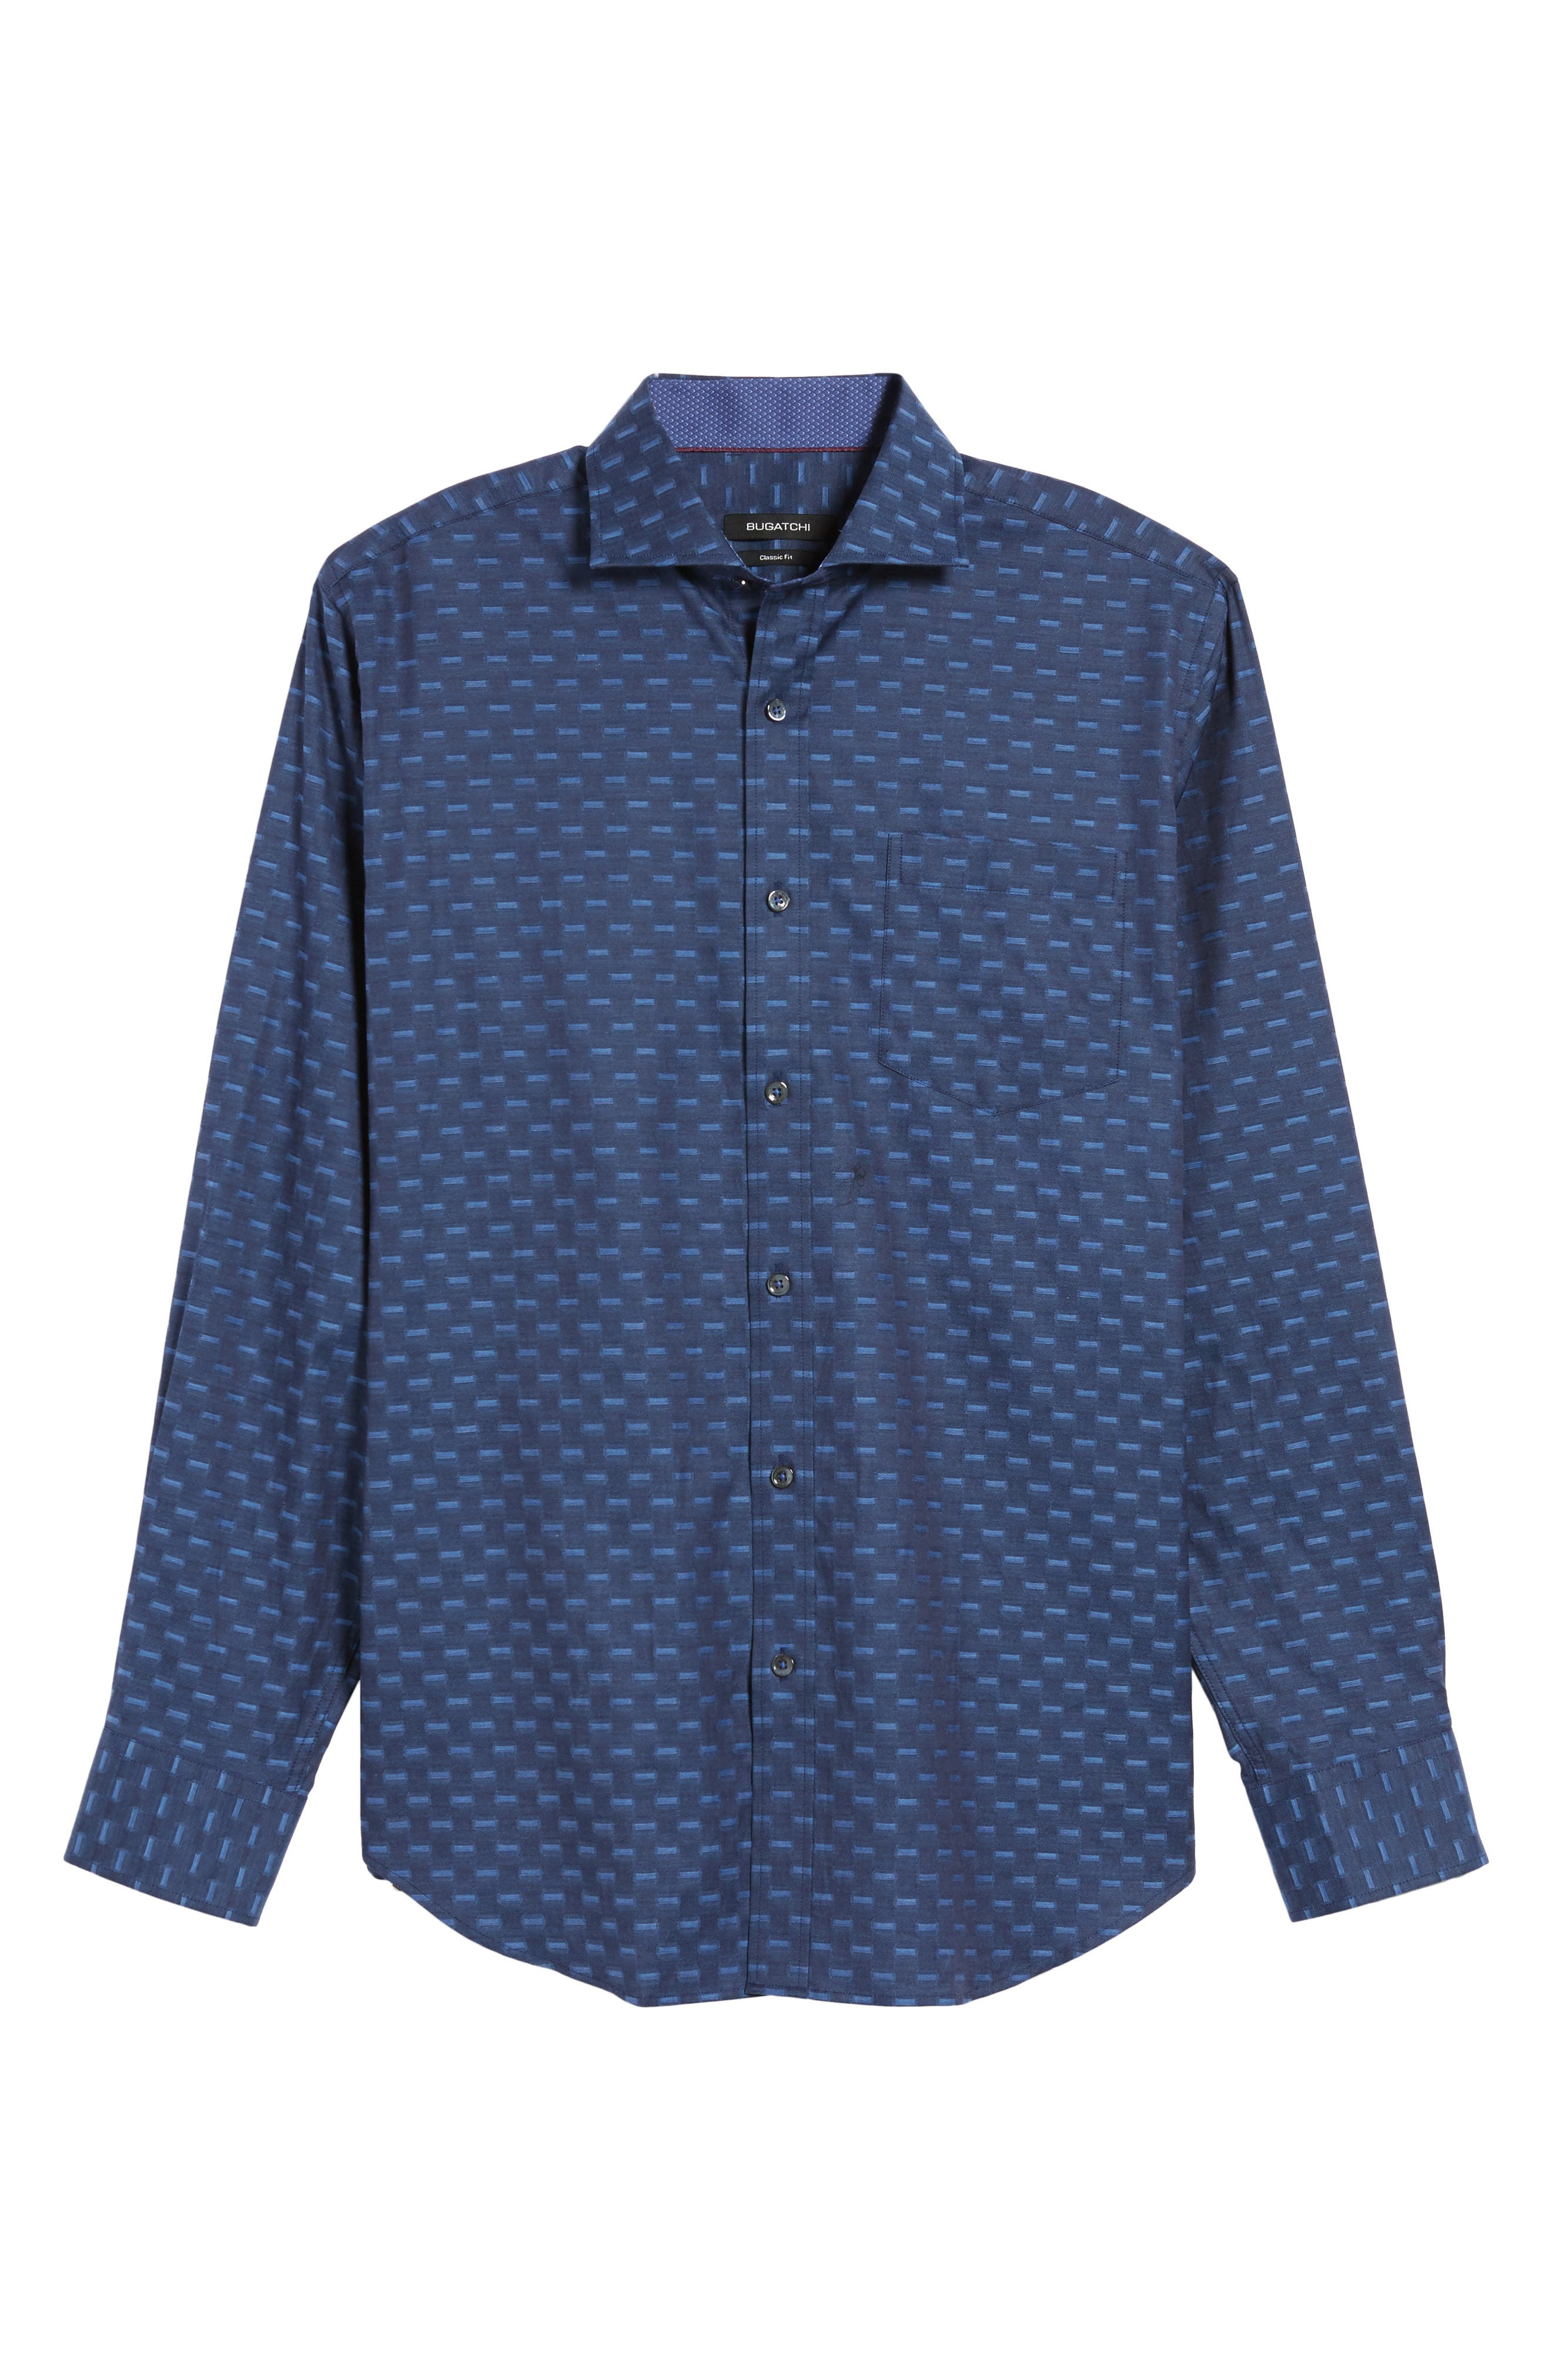 Classic Fit Jacquard Sport Shirt,                             Alternate thumbnail 6, color,                             410